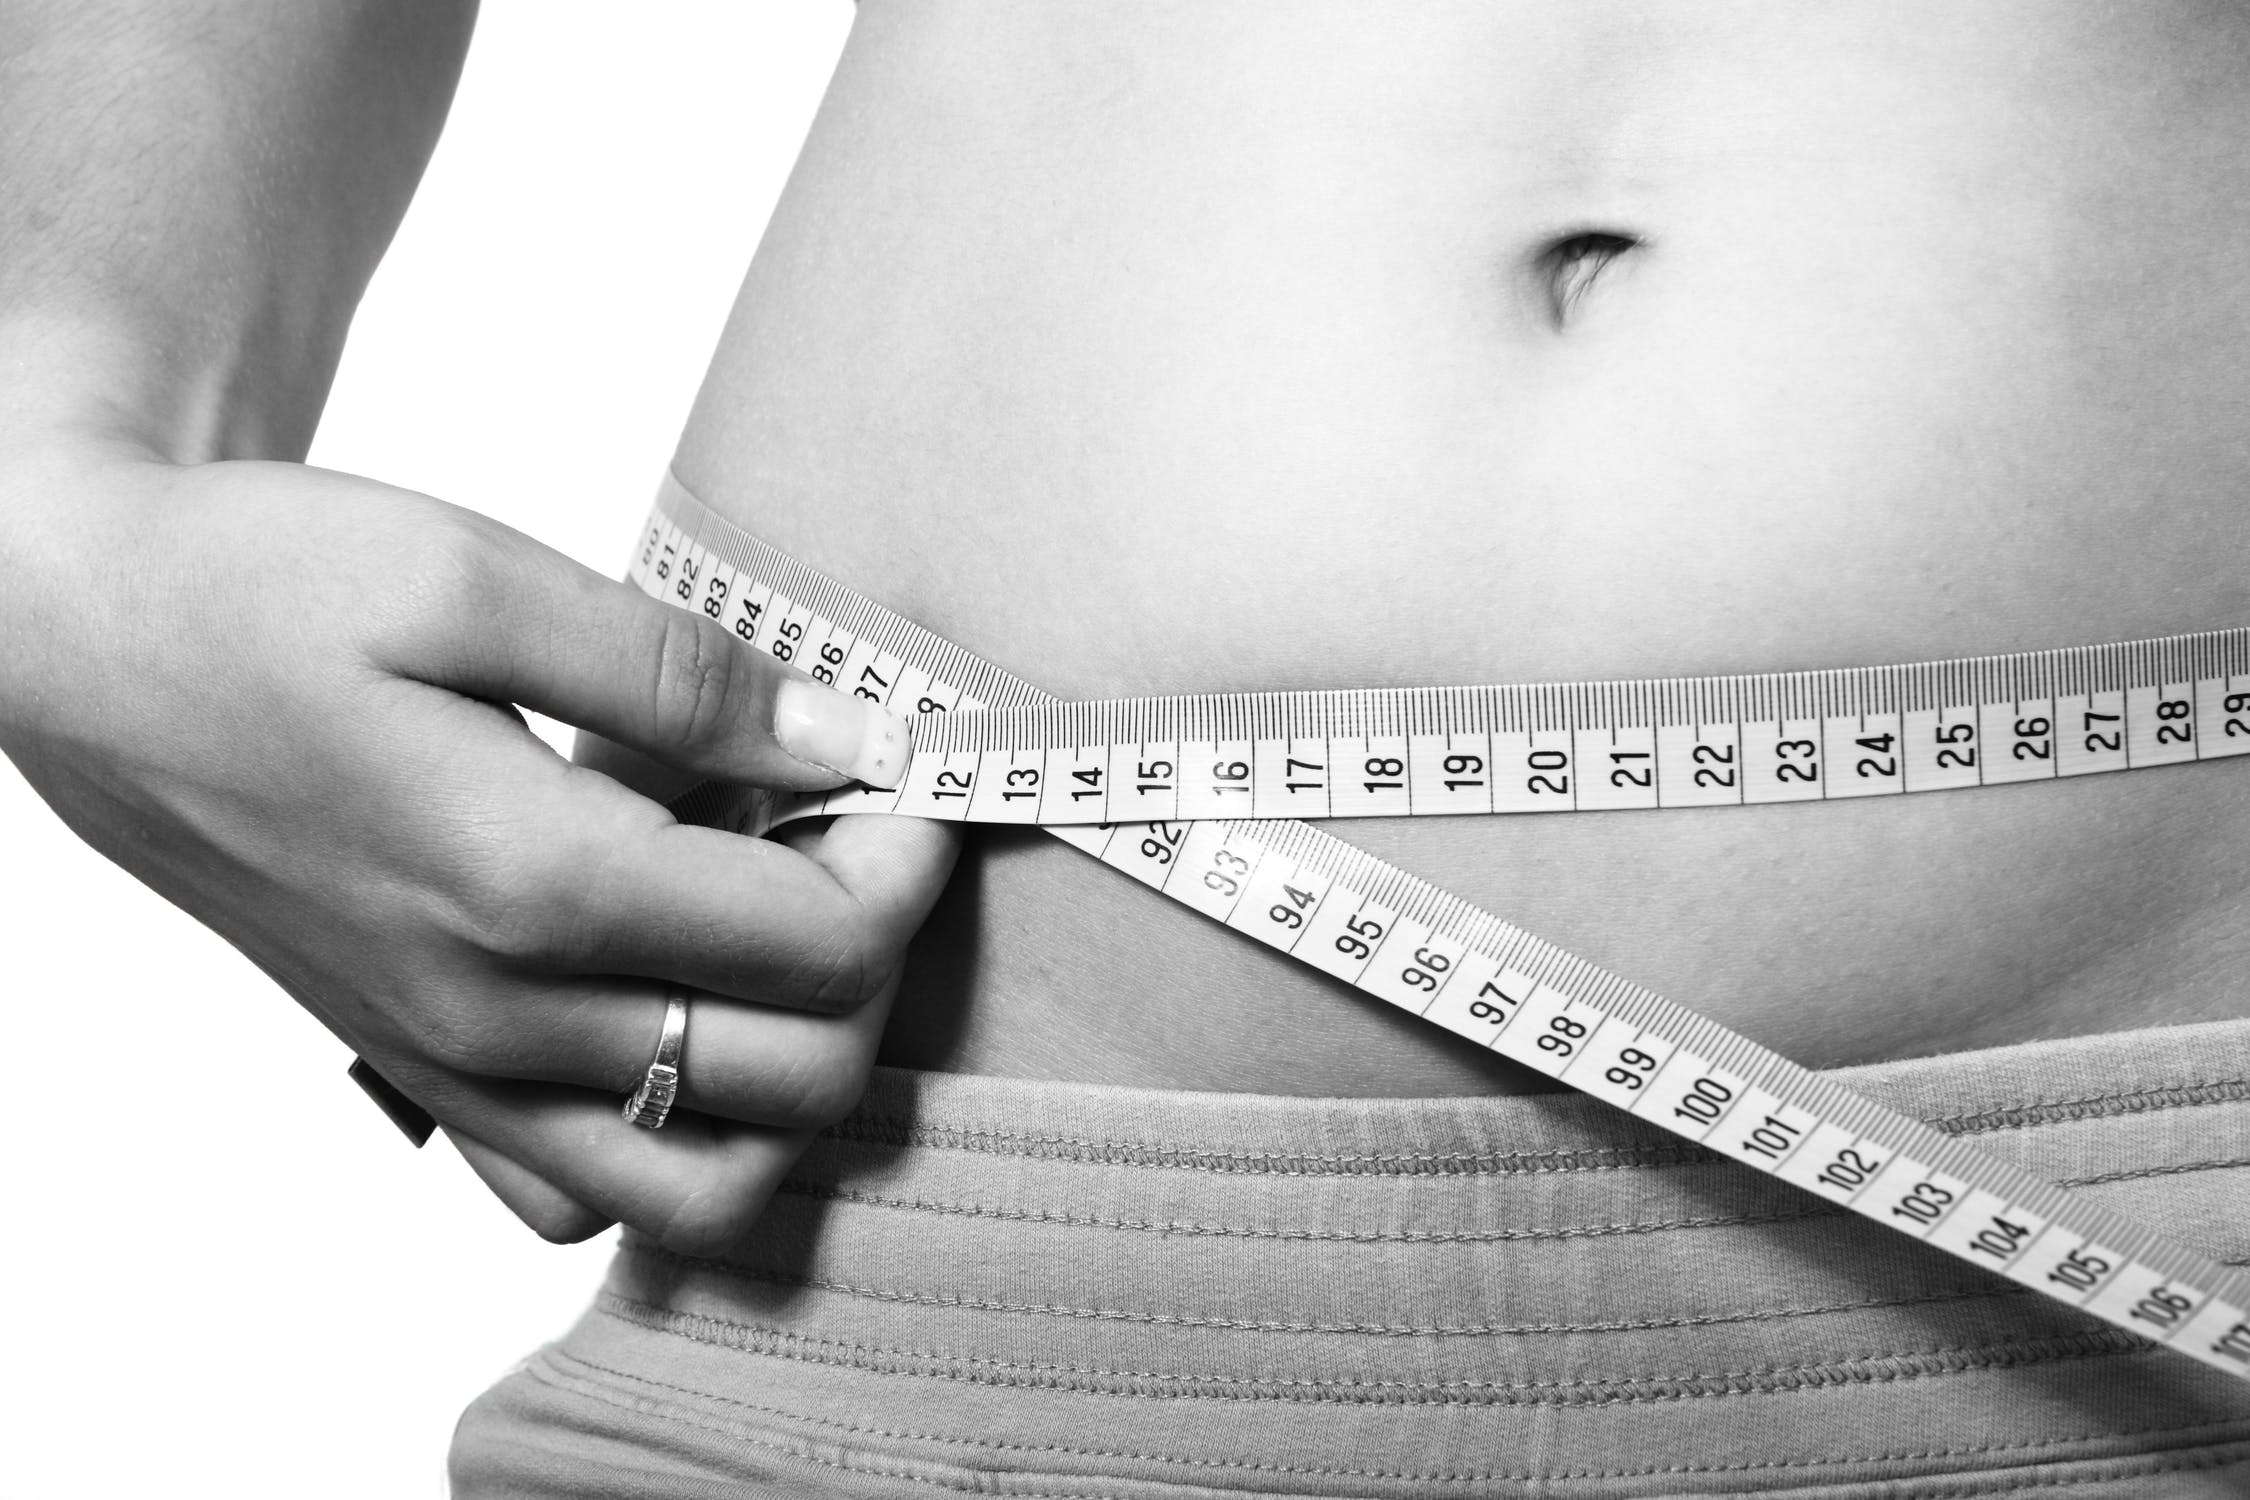 Weight Loss: A Major Concern for Everyone